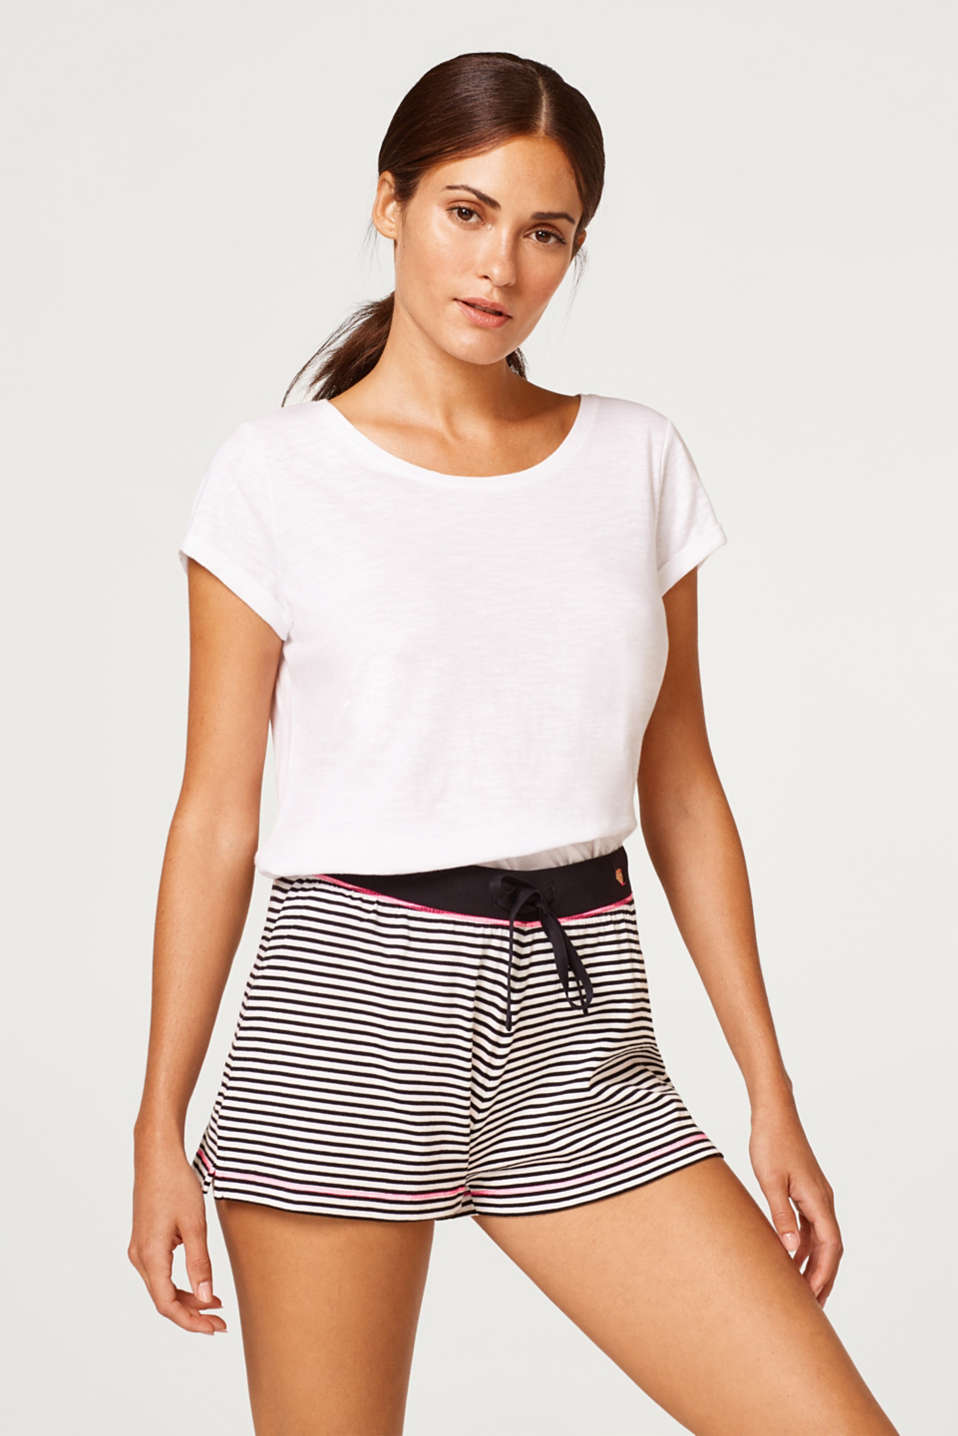 Esprit - Jersey shorts with stripes, 100% cotton